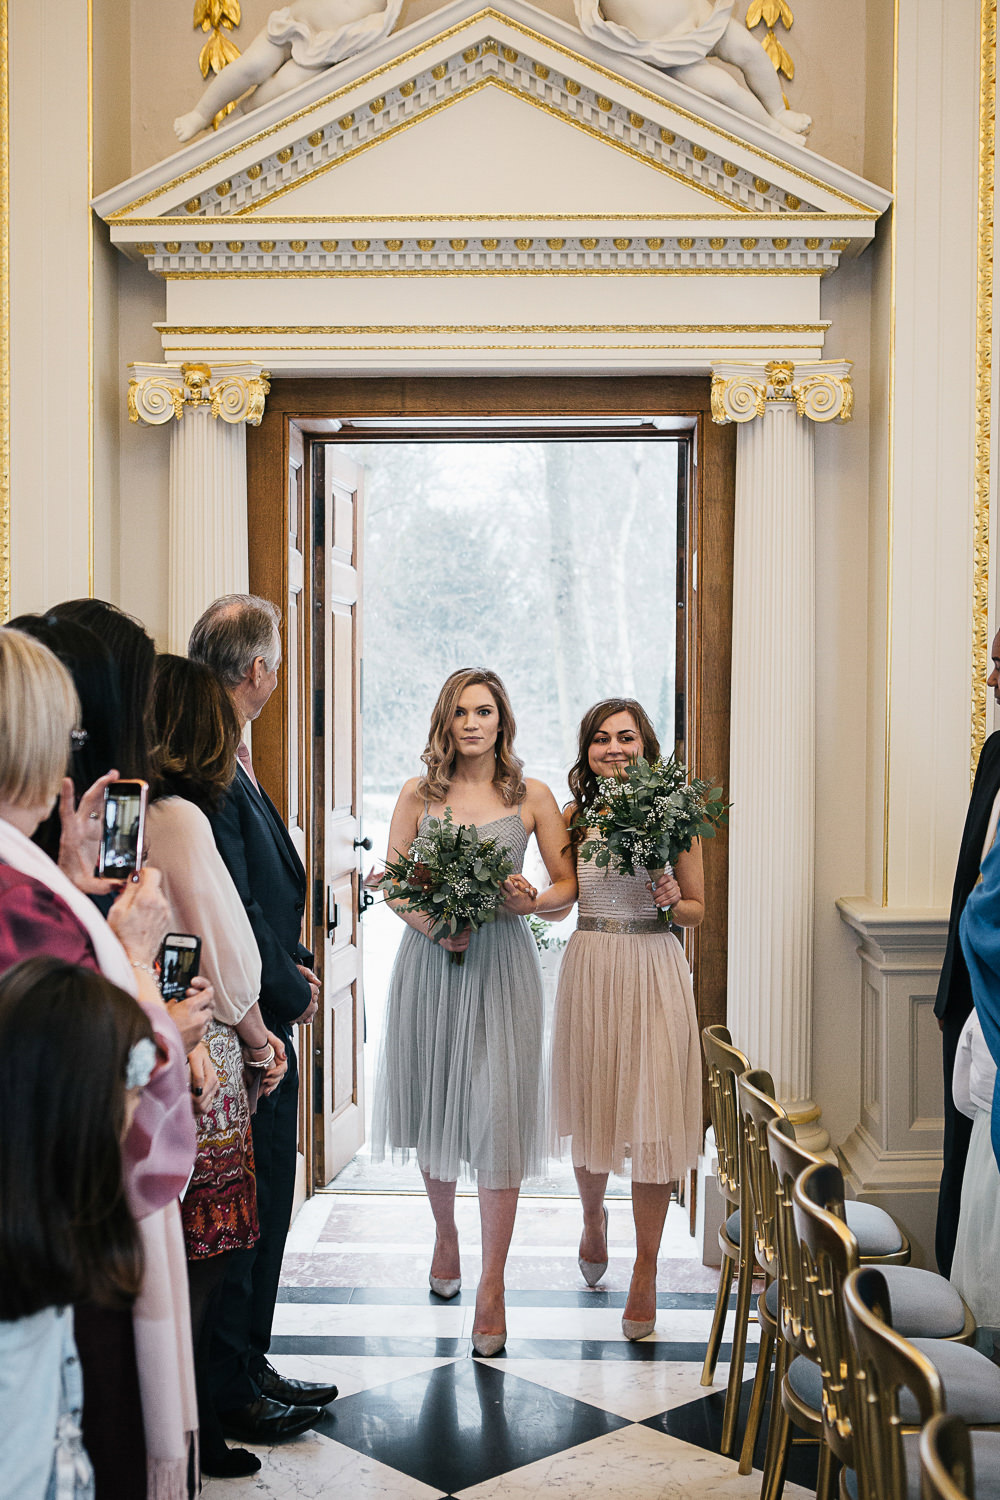 Bridesmaids Tulle Skirts Orleans House Gallery Wedding My Beautiful Bride Photography